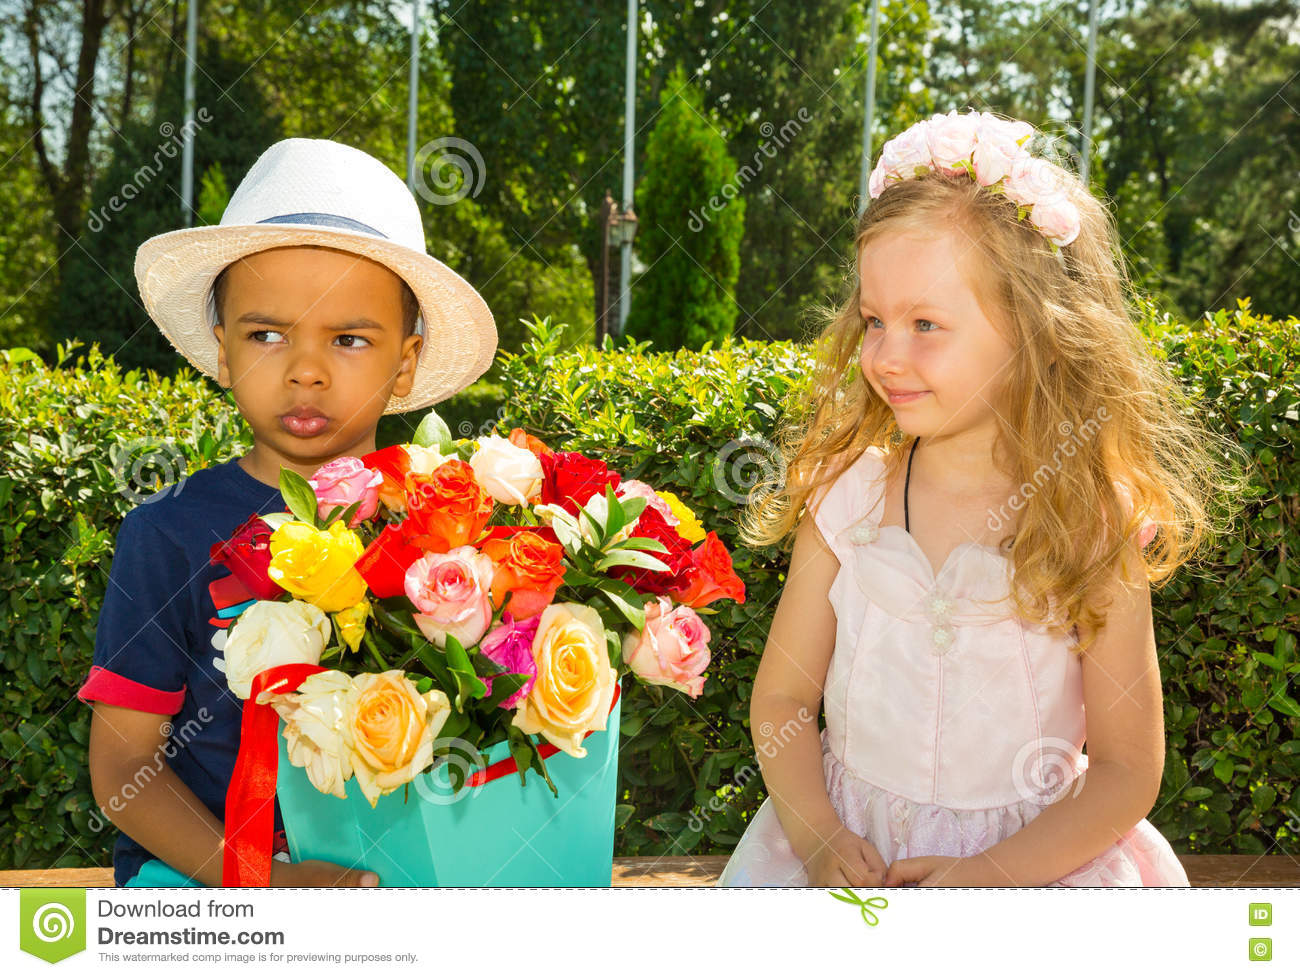 Black African American Boy Kid Gives Flowers To Girl Child On Birthday Little Adorable Children